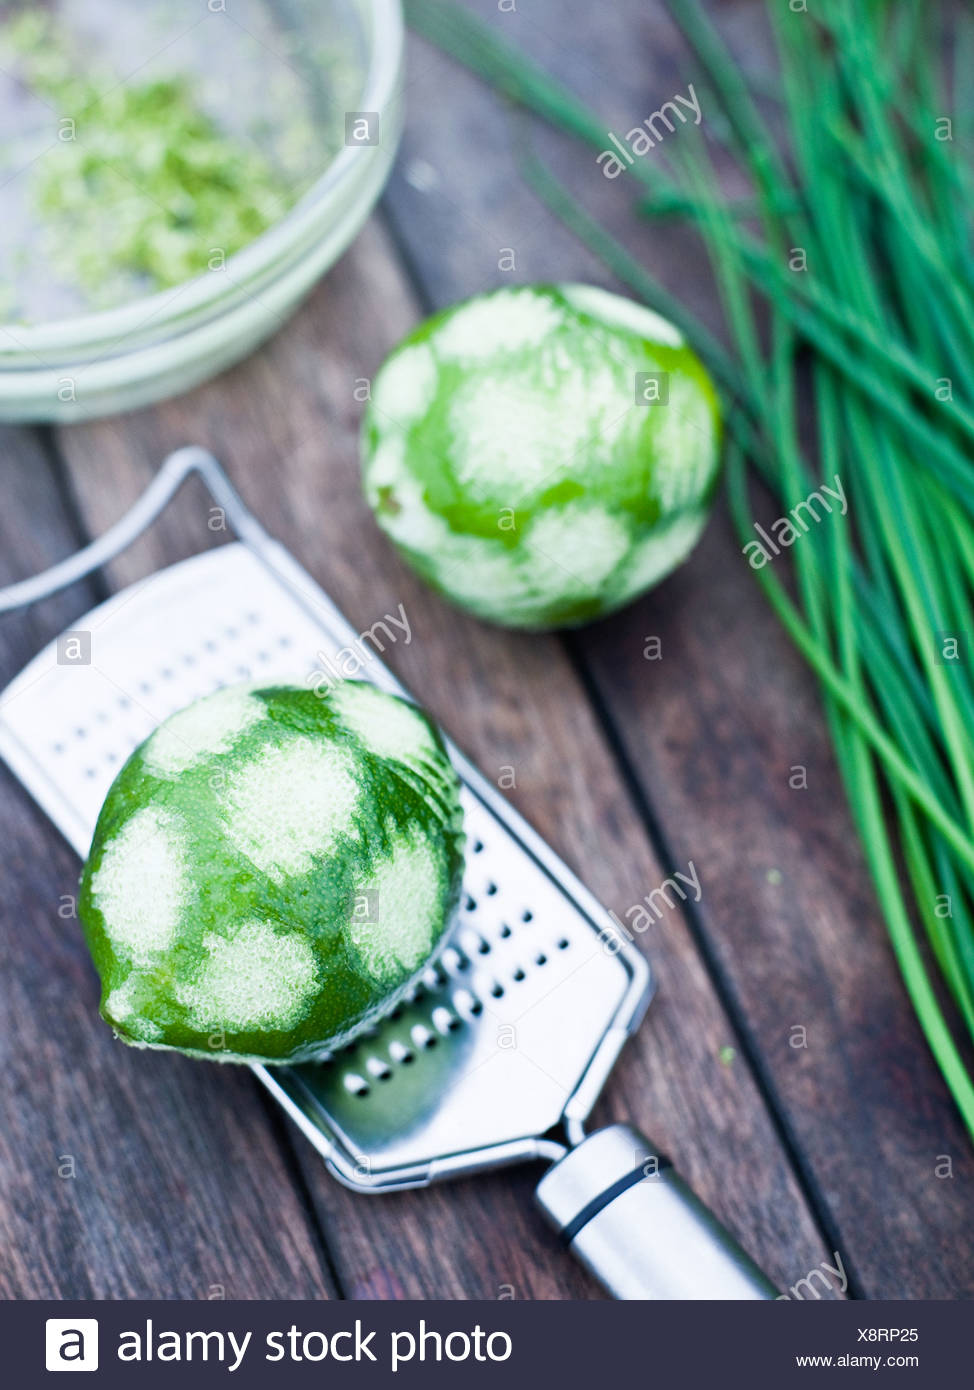 Lime, close-up, Sweden. Stock Photo